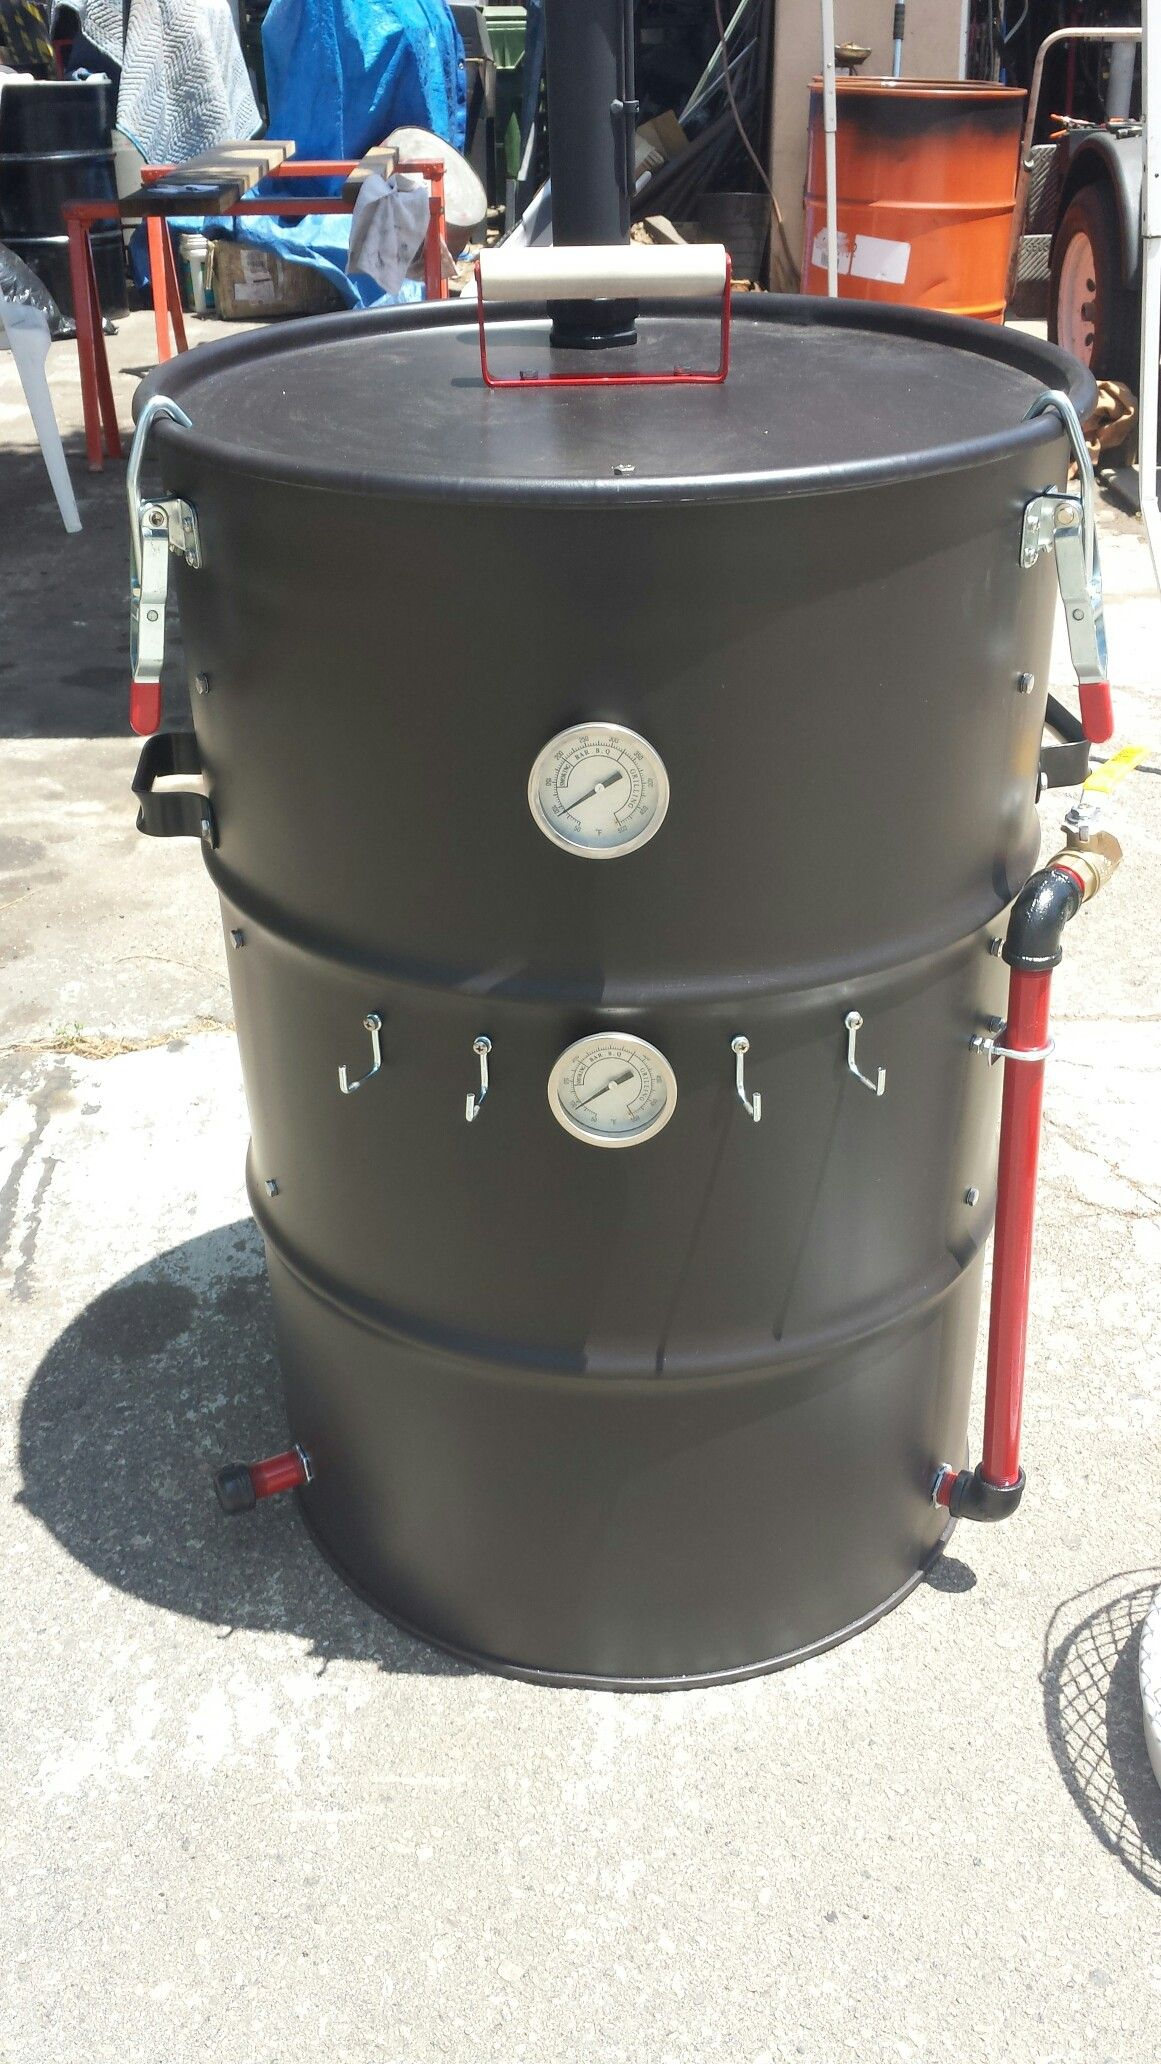 uds ugly drum smoker for sale ugly drum smokers. Black Bedroom Furniture Sets. Home Design Ideas